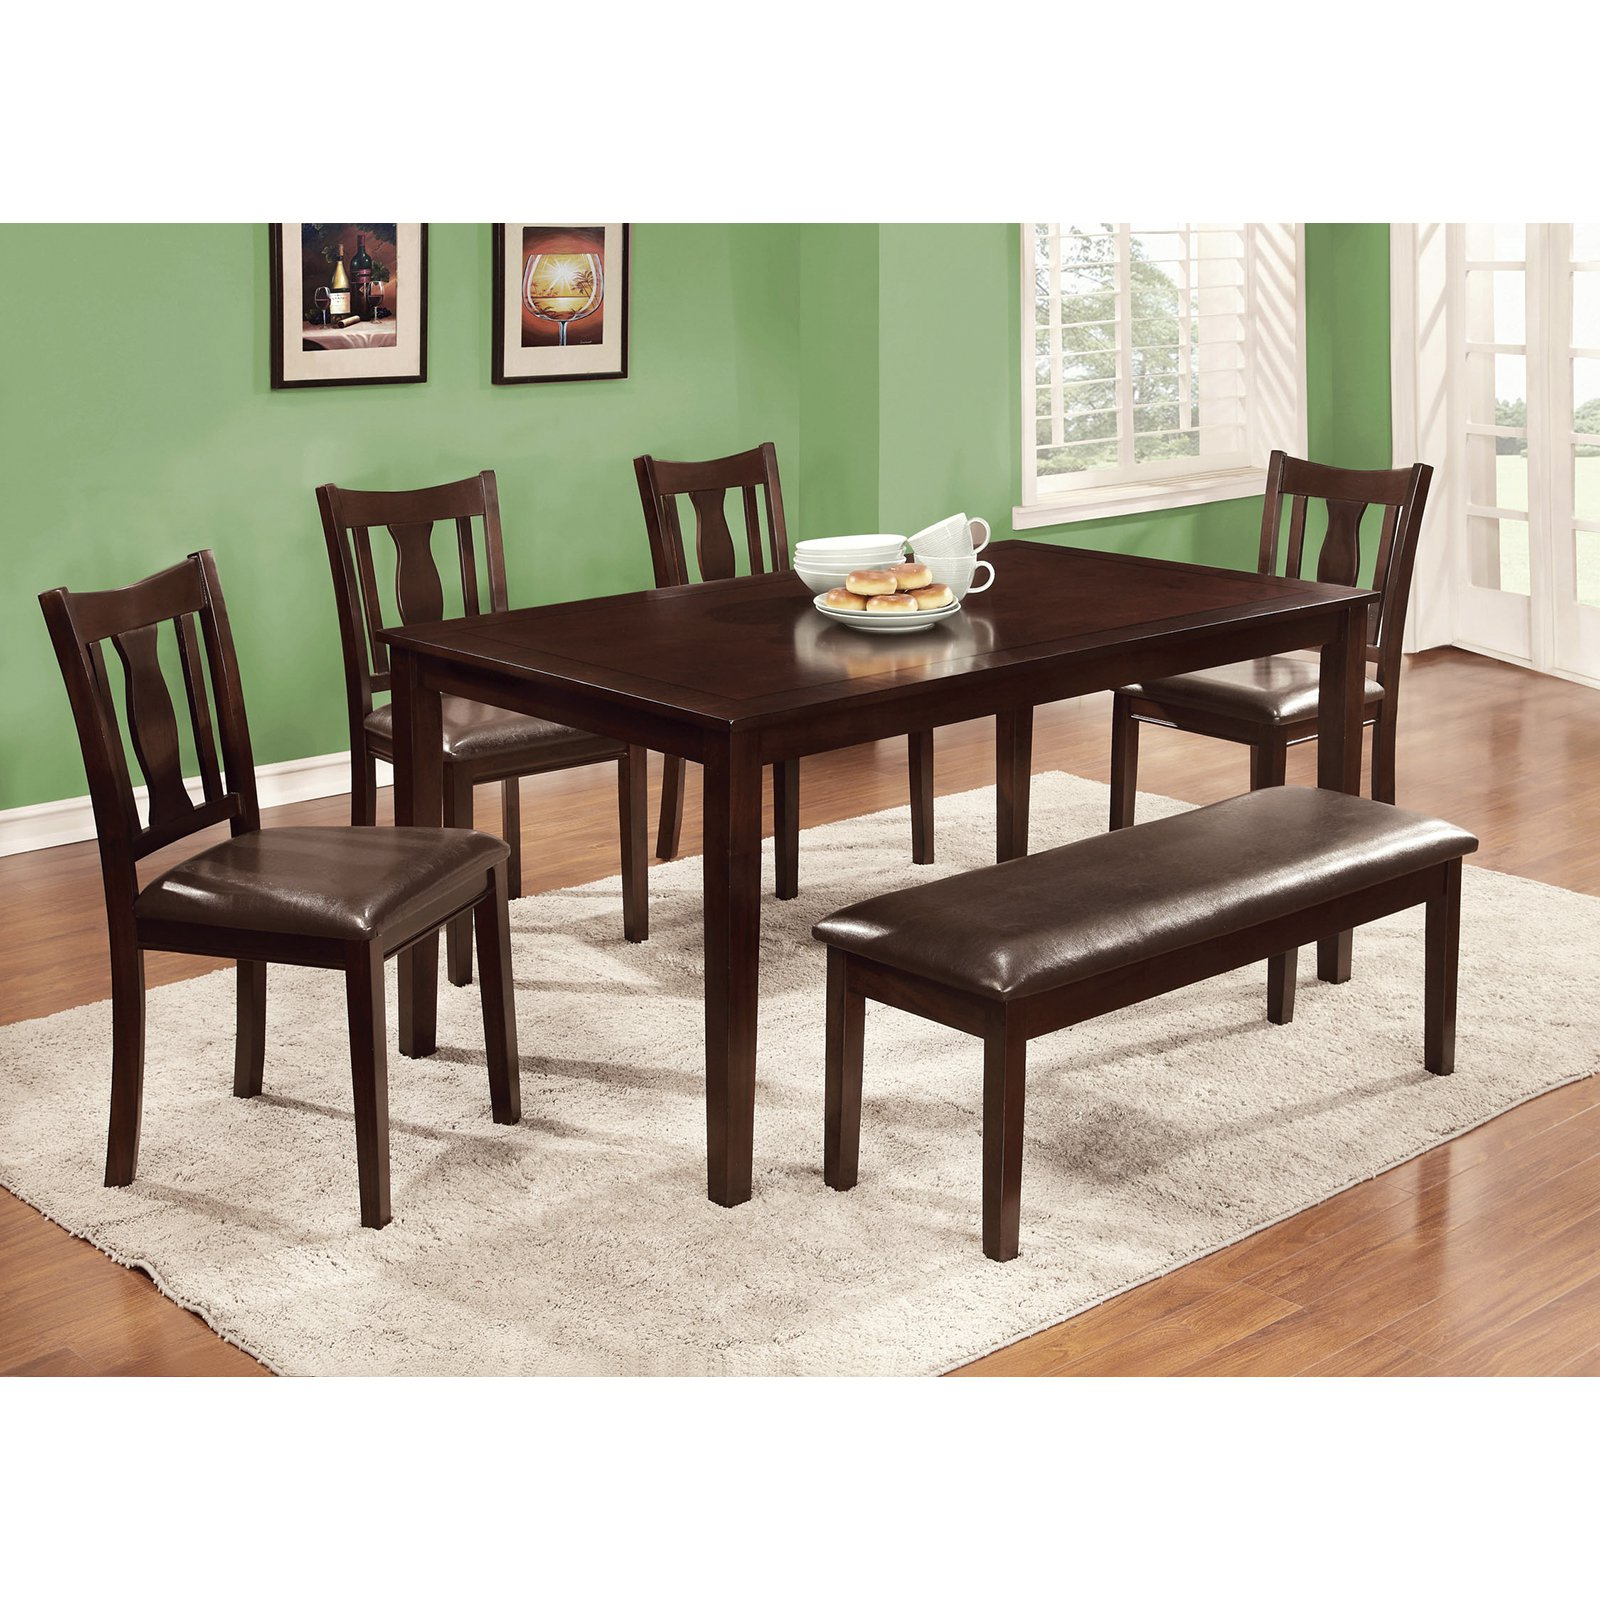 Furniture Of America Chargon 6 Piece Dining Table Set With Bench   Espresso